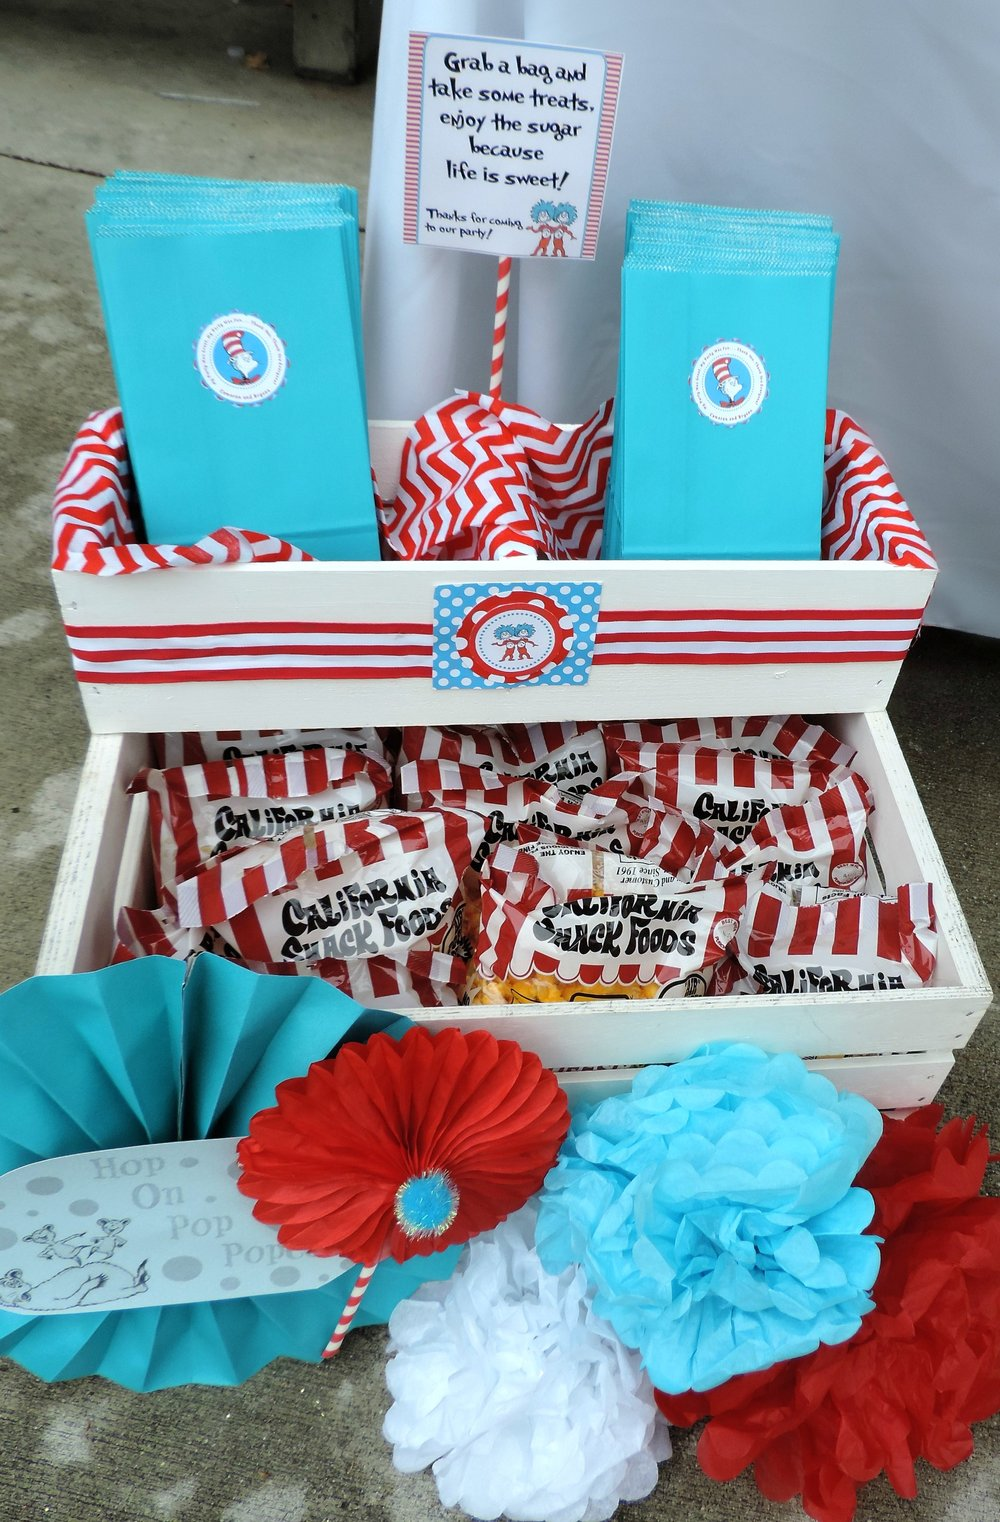 Dr.Suess Treat Bags-Dr.Suess Labels-.Dr.Suess Birthday-Thing 1 Thing 2 Birthday Party-Dr.Suess Birthday Party Ideas-Thing 1 and Thing 2 Party Ideas-Park Birthday-Double Birthday-First Birthday Ideas-Twins Birthday Theme-Dr.Suess Party Decor-Dr.Suess Dessert Ideas-Thing 1 Thing 2 Dessert Ideas-www.SugarPartiesLA.com